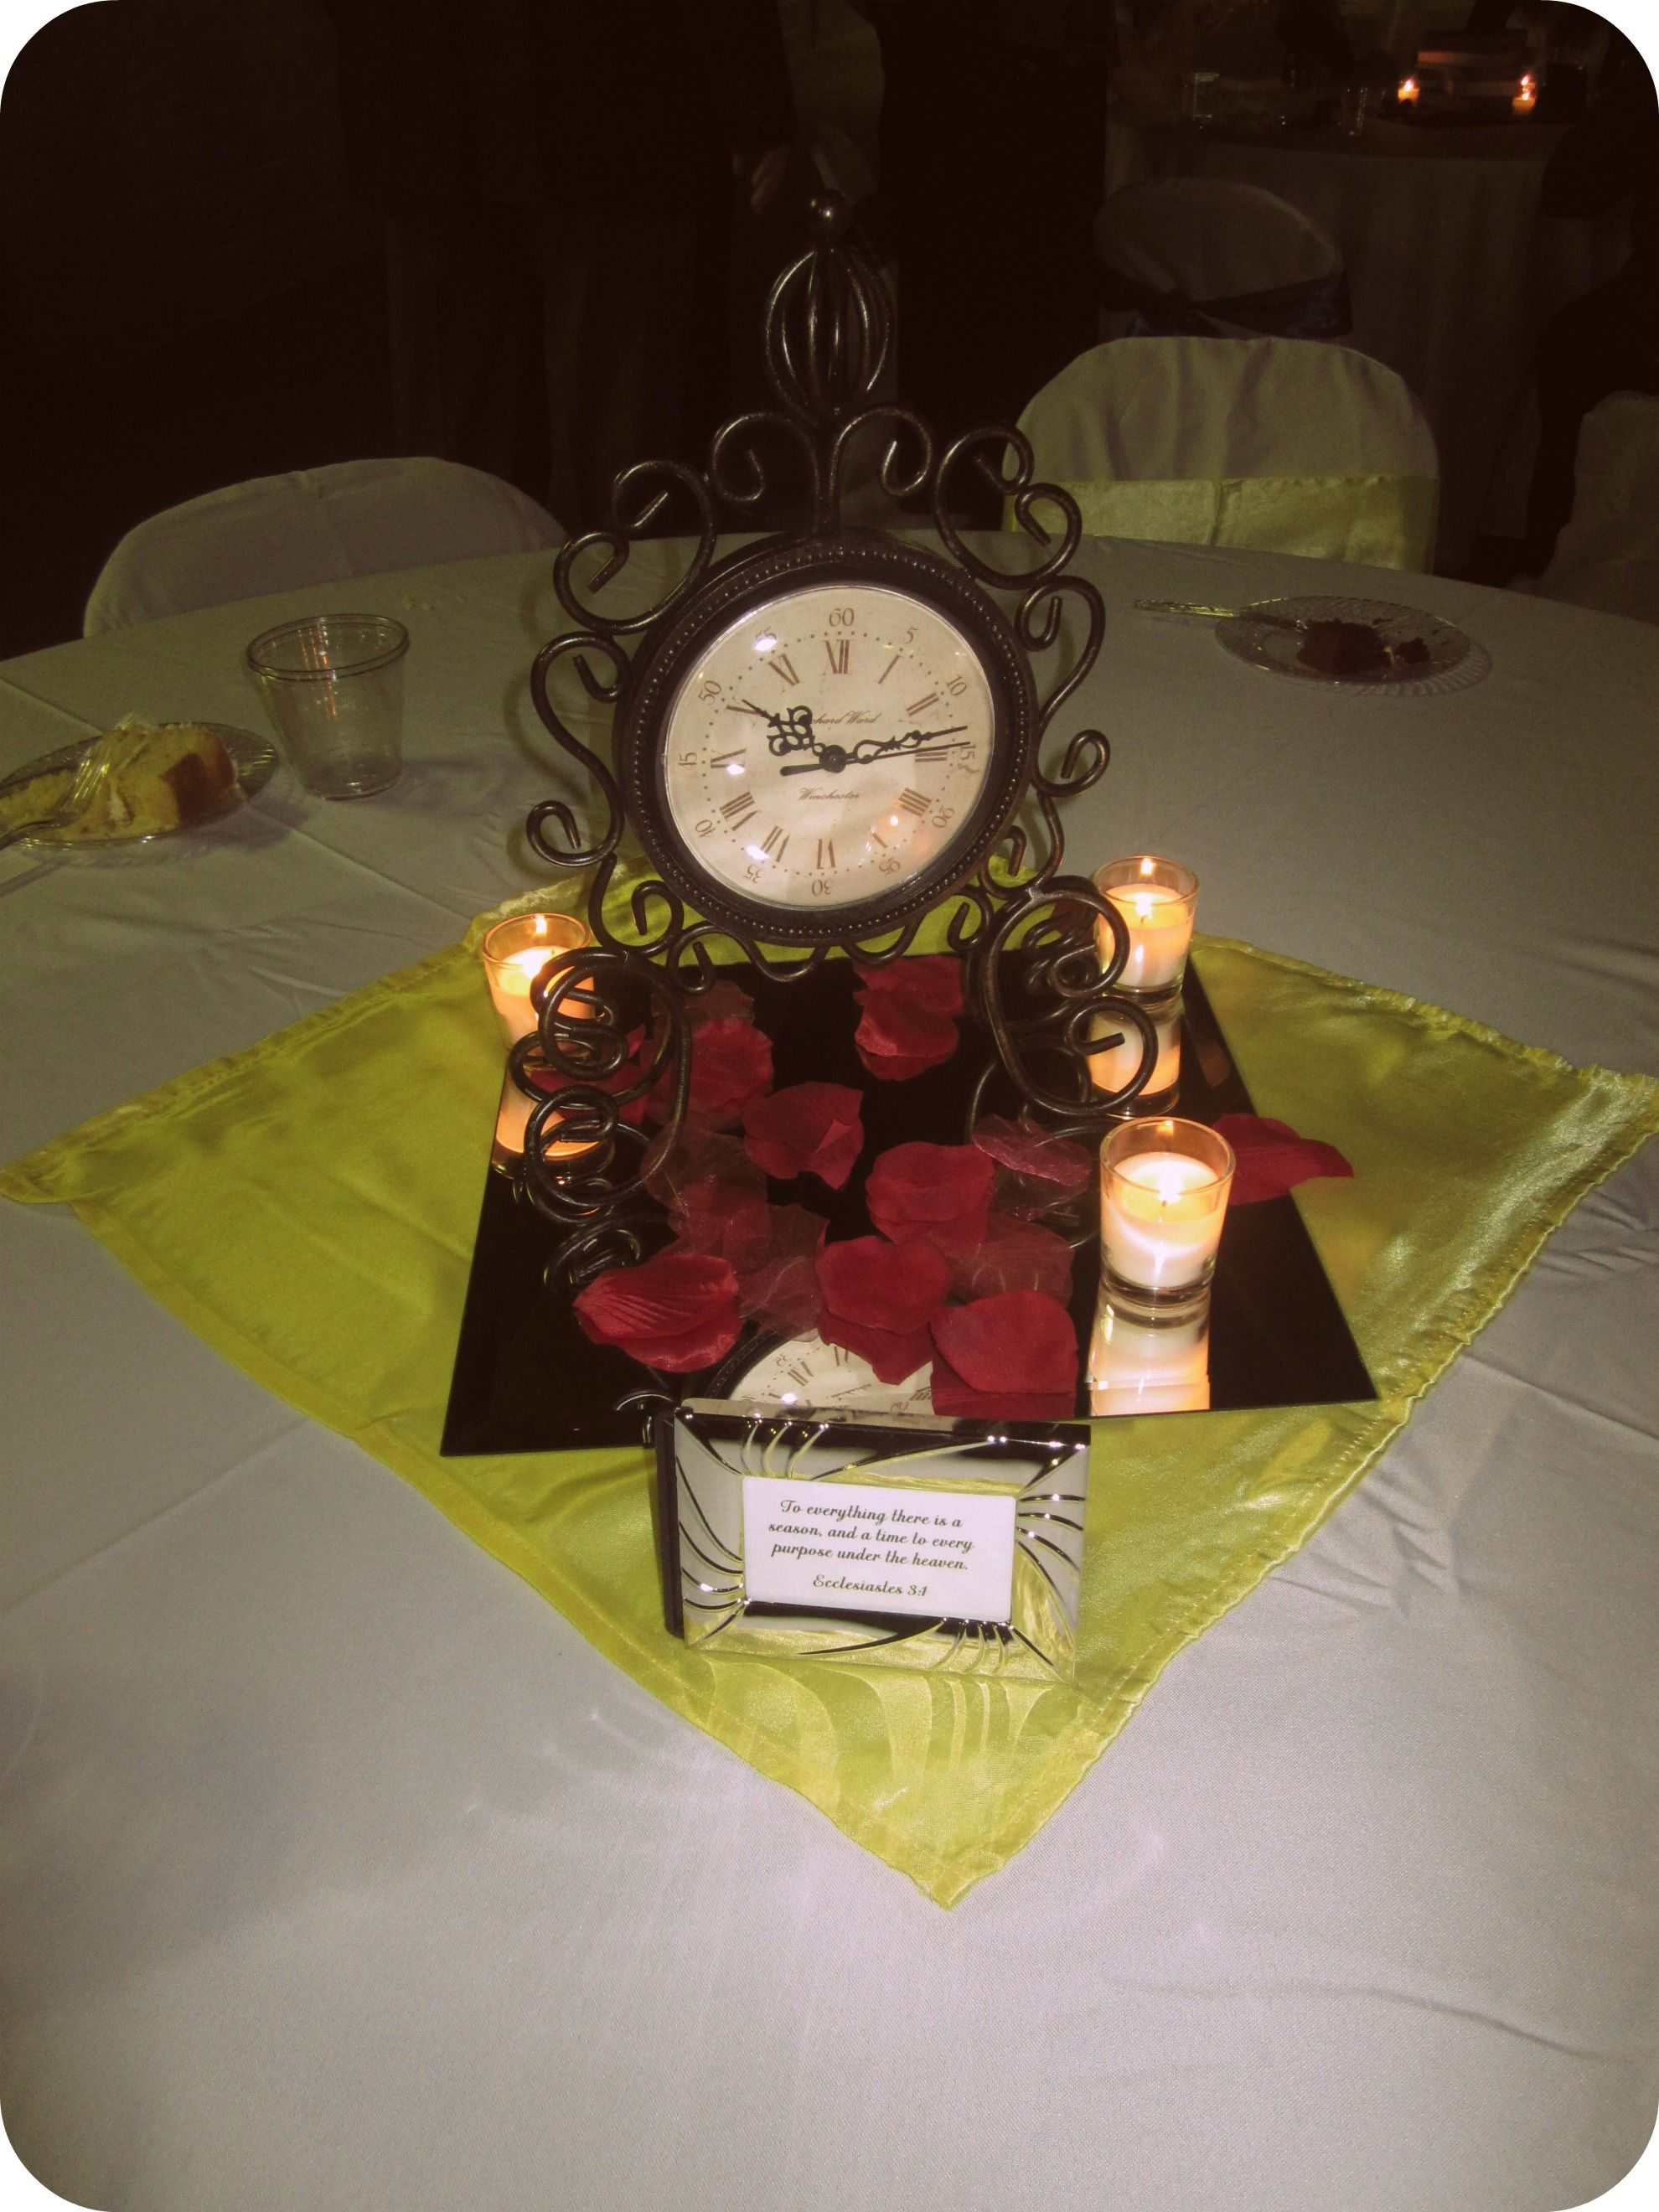 One Of The Centerpieces At Stephanieu0027s Beauty And The Beast Themeu0027d Wedding